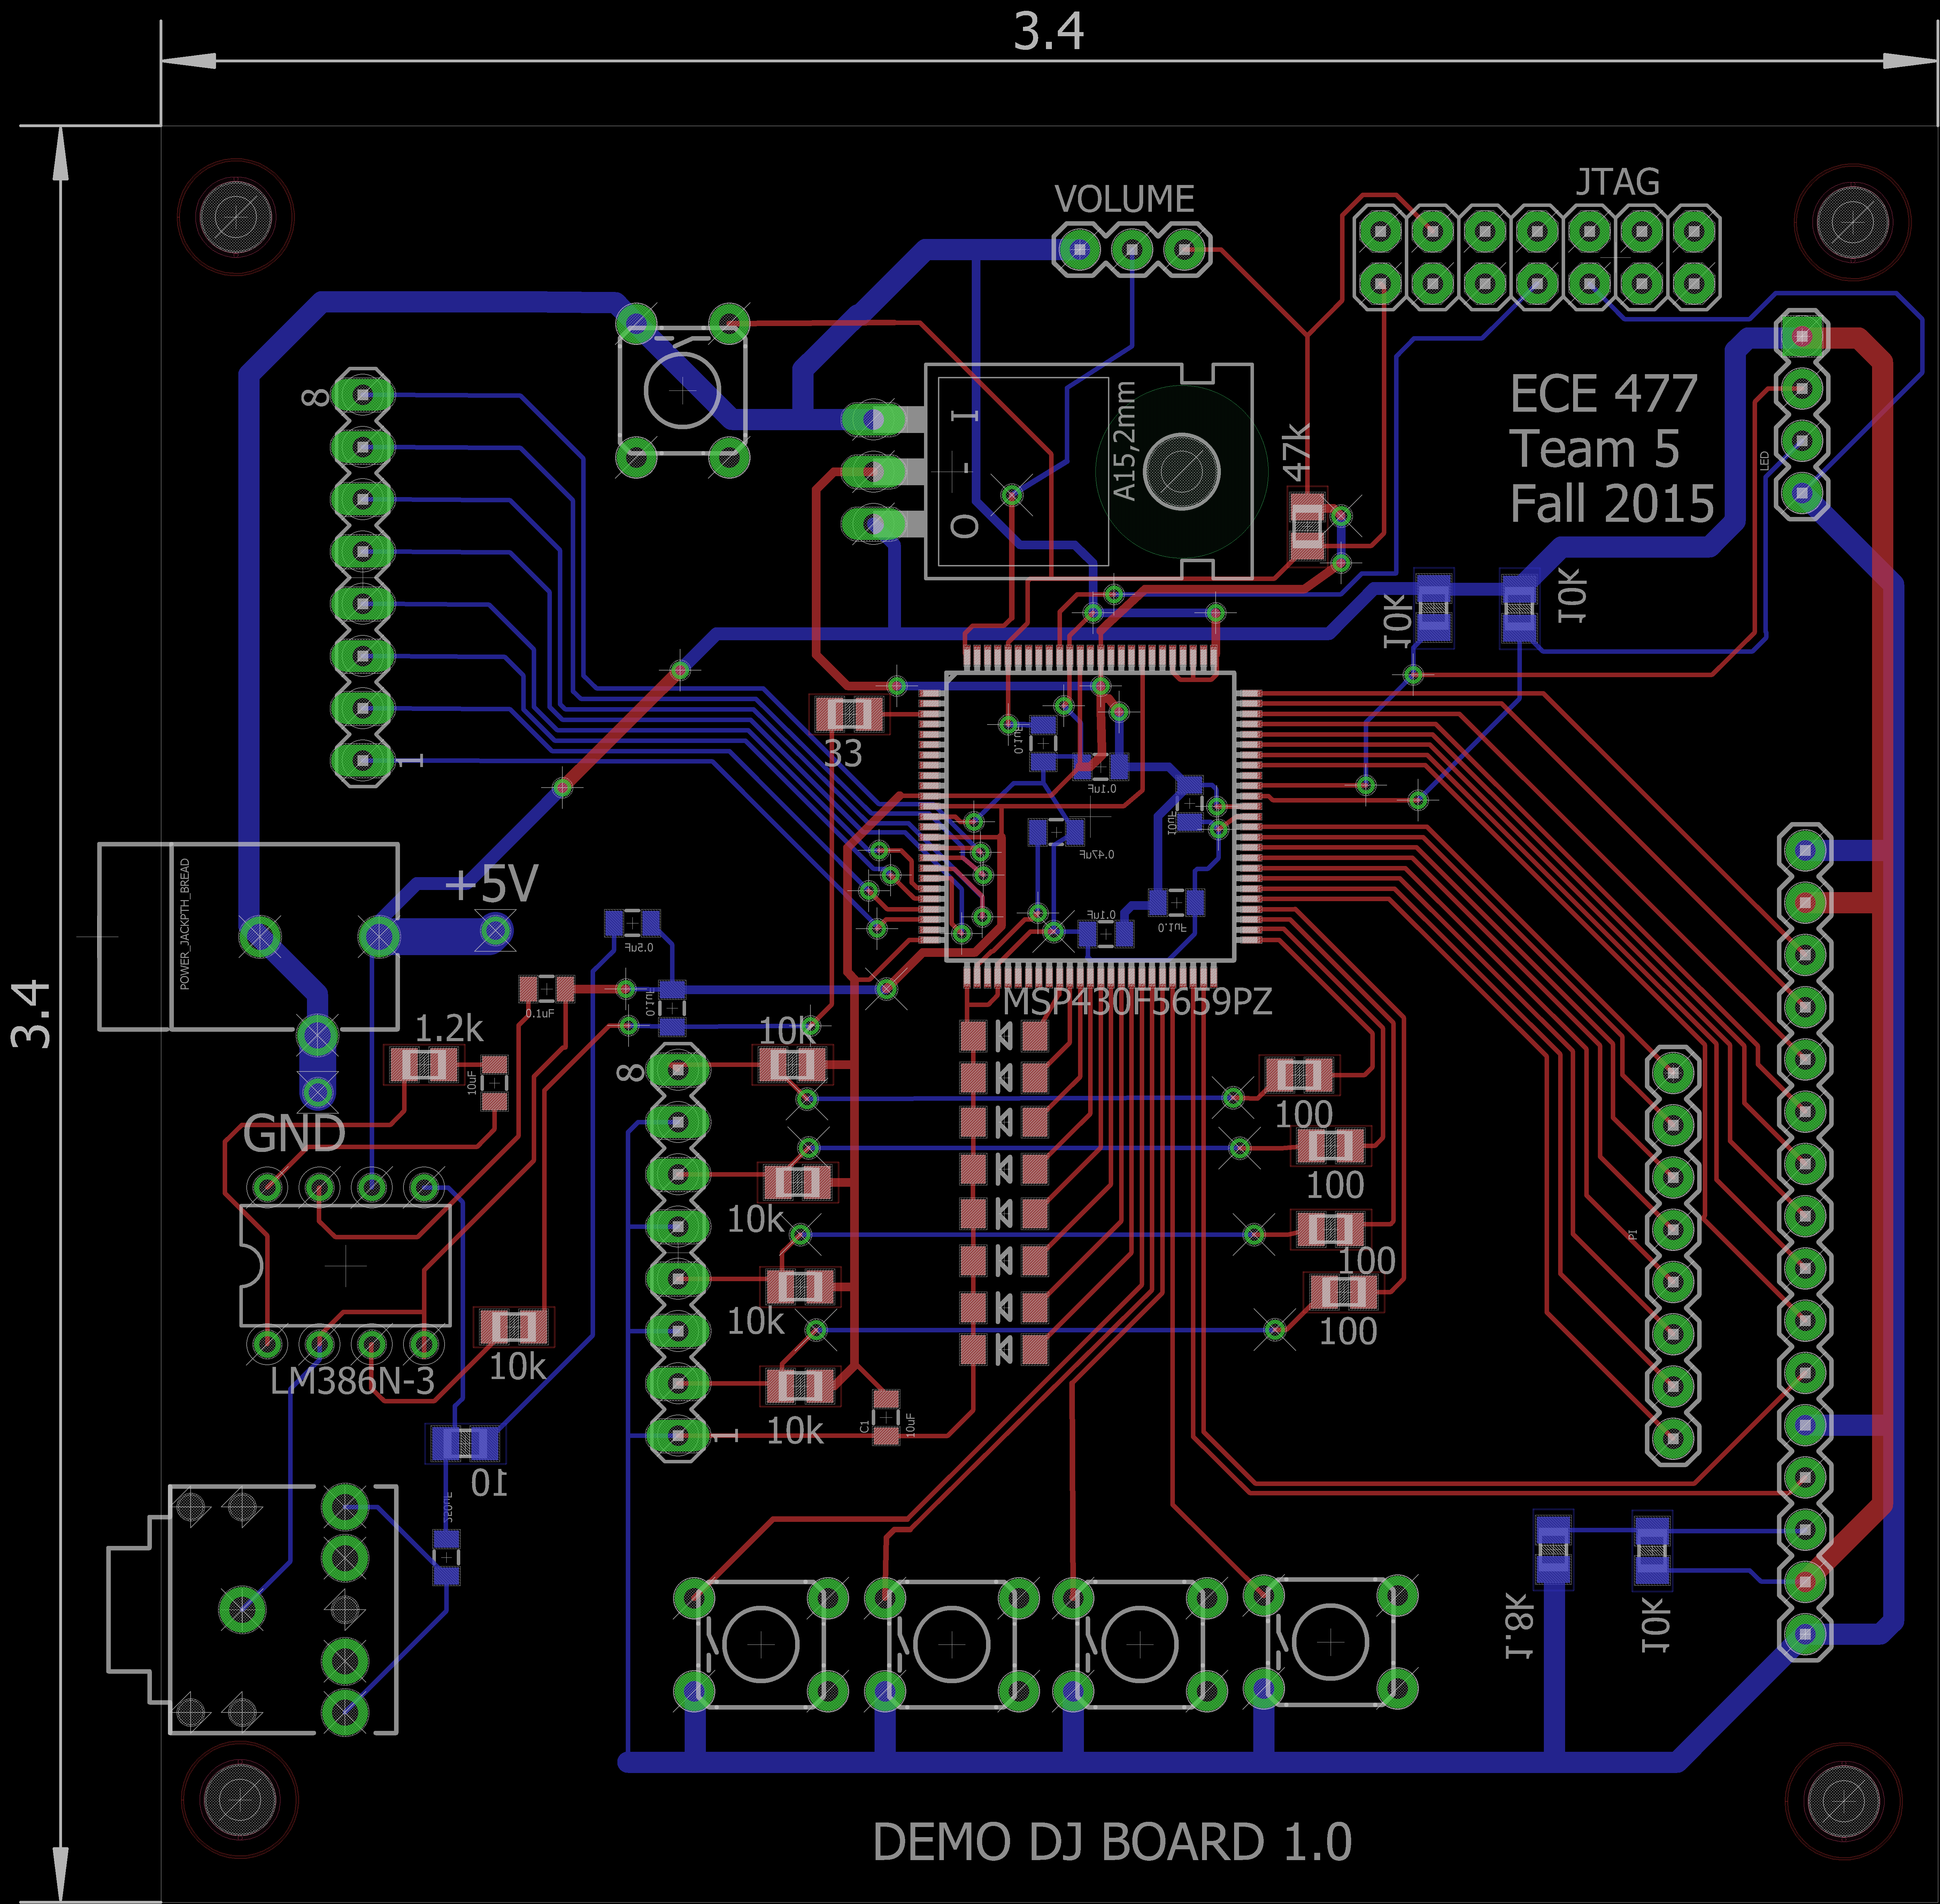 Ece477 Course Documents Electronic Circuit Componnent Data Lesson And Etc Usb Power Fig 93 Final Pcb Layout